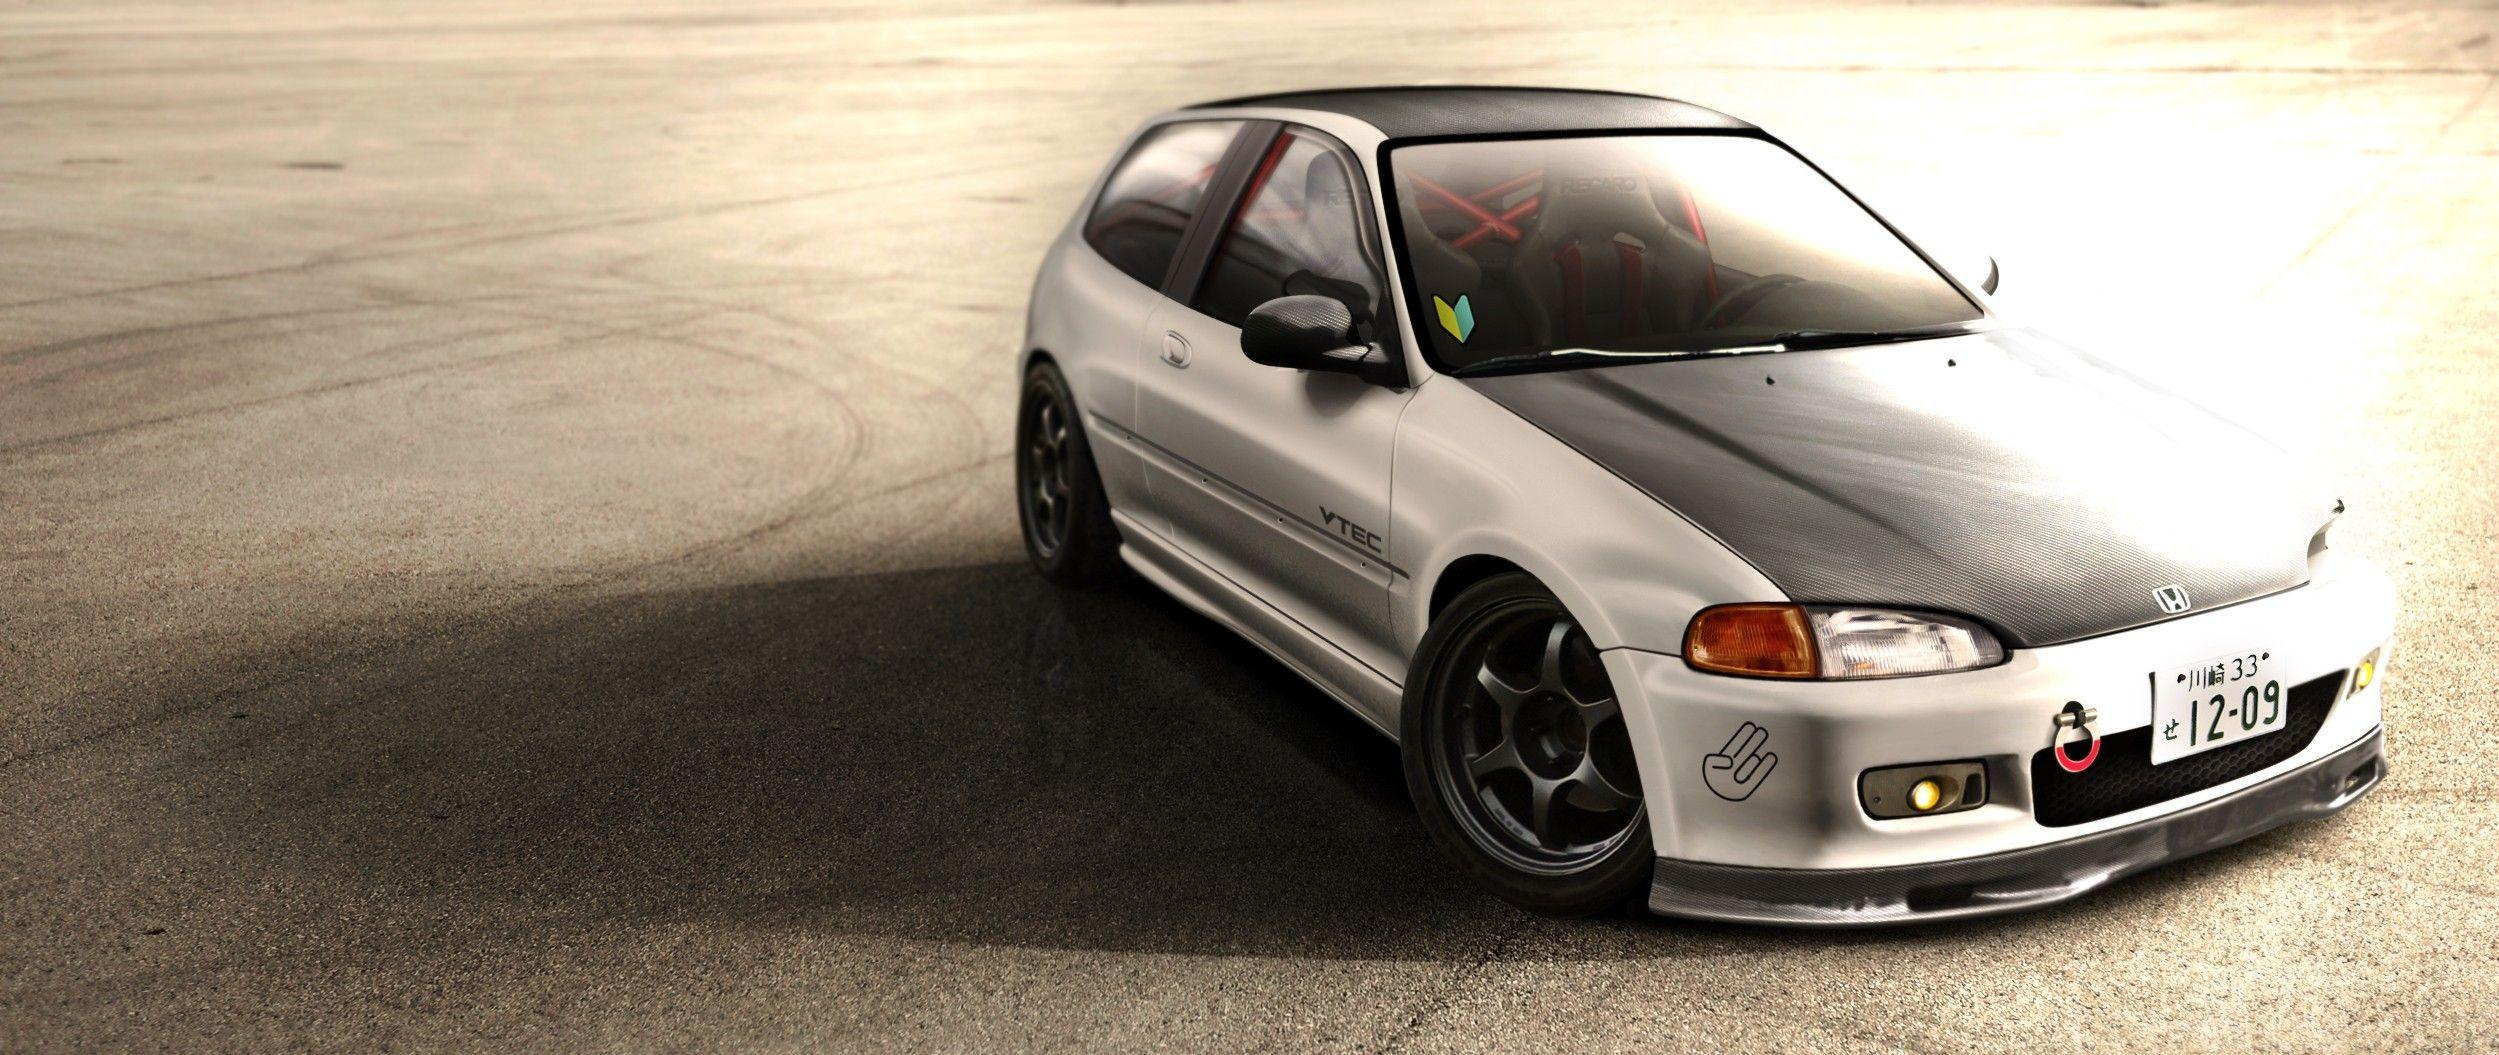 honda civic eg hatch wallpapers - wallpaper cave